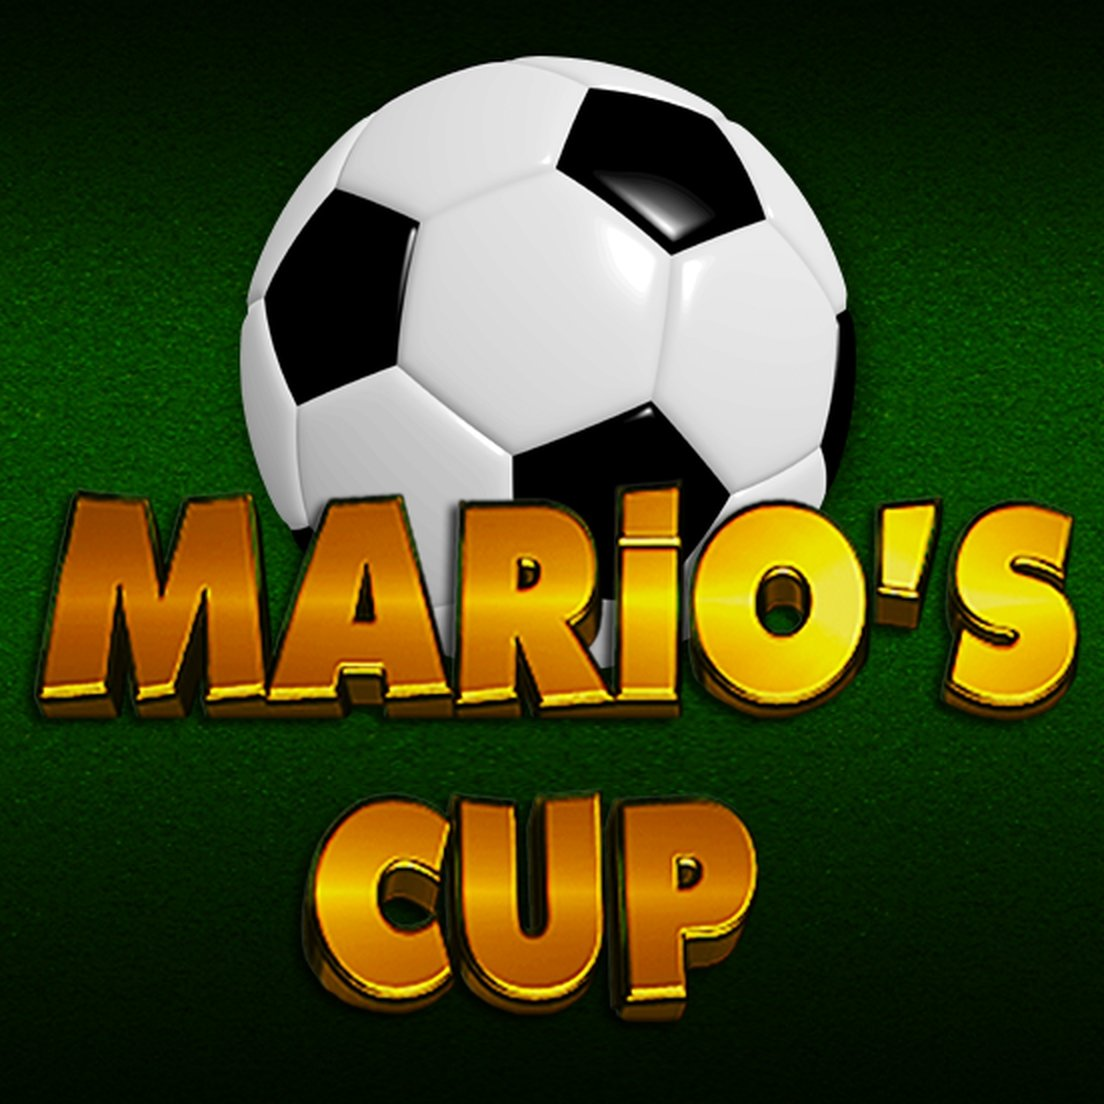 The MARIO'S CUP Online Slot Demo Game by Capecod Gaming